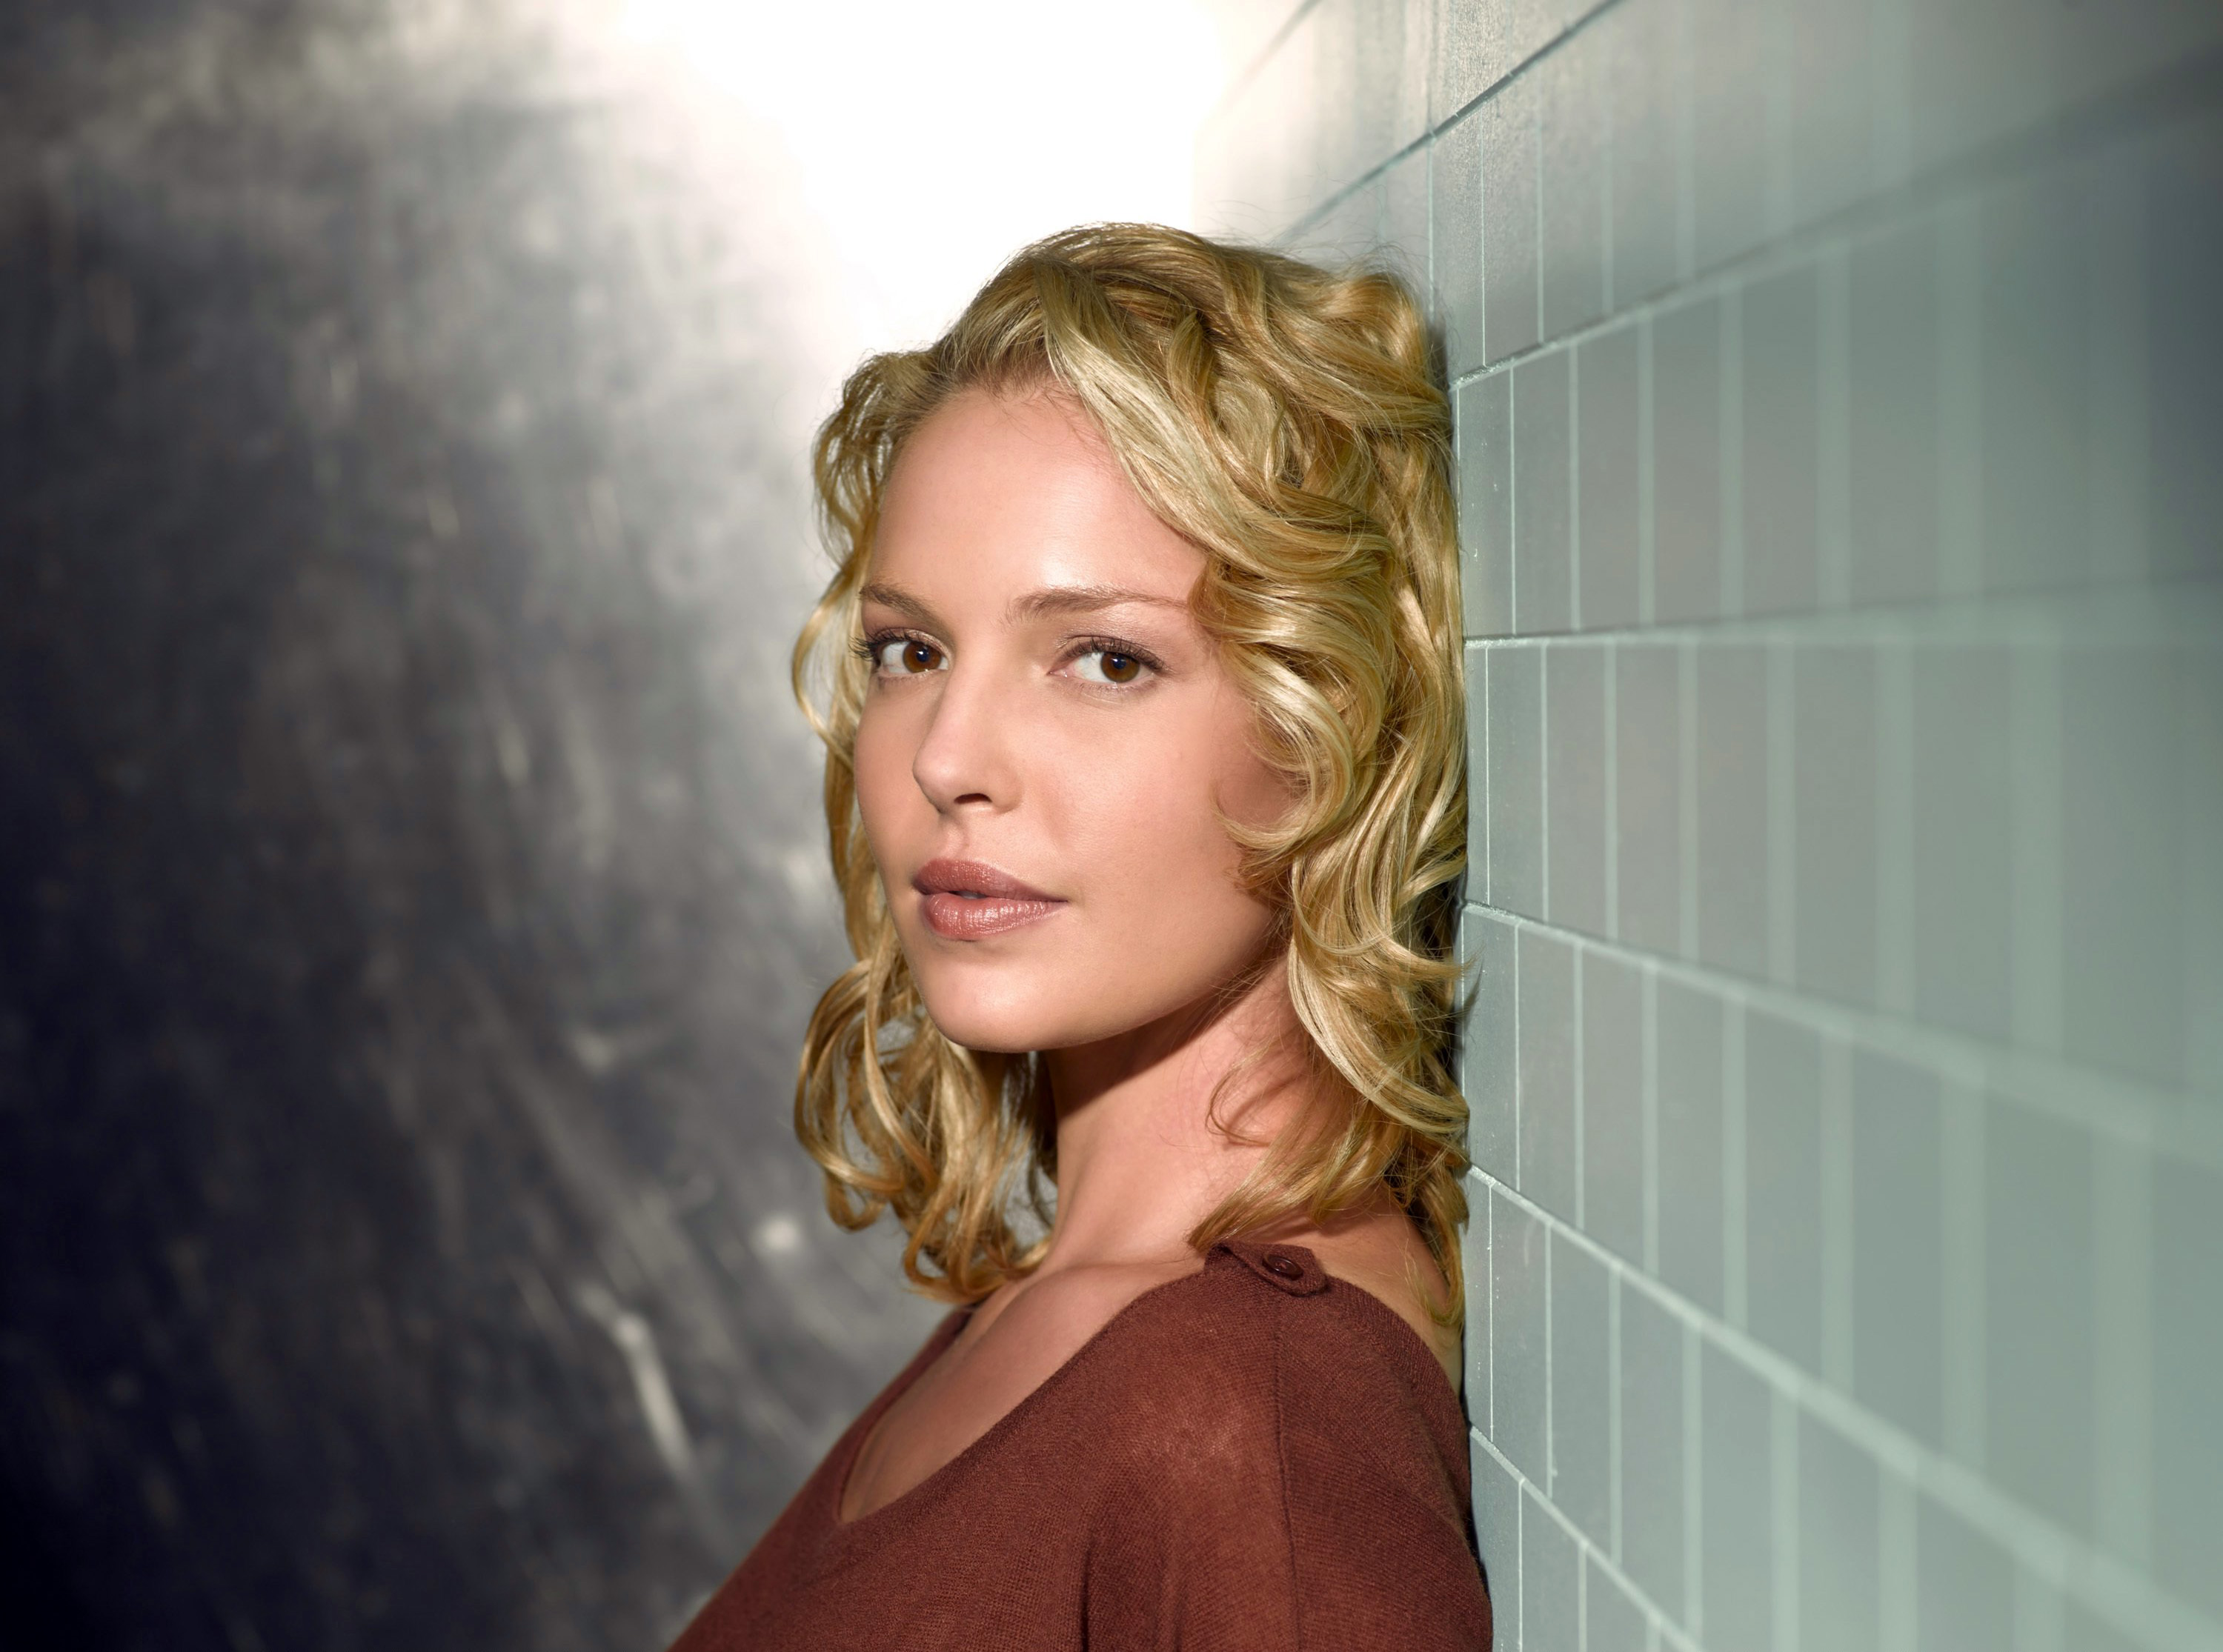 Greys Anatomy S04 Katherine Heigl 6 Dvdbash Dvdbash